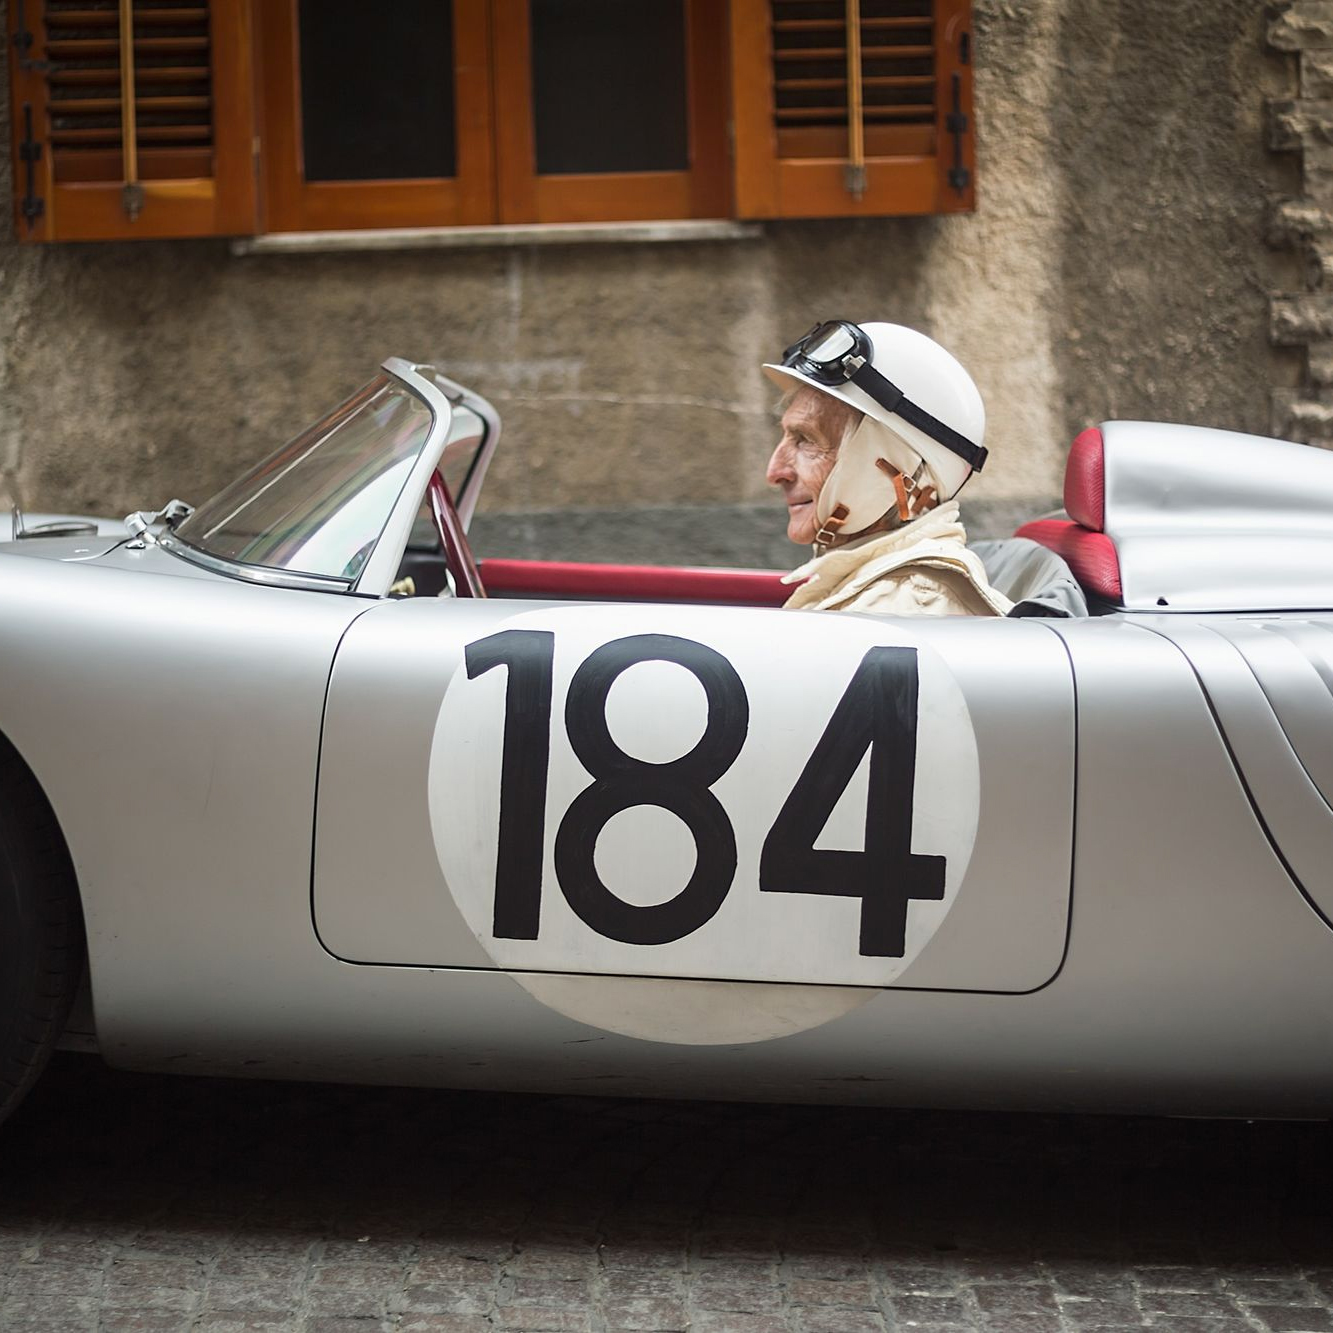 Derek Bell On What It Was Like To Drive The Porsche 718 Around The Targa Florio